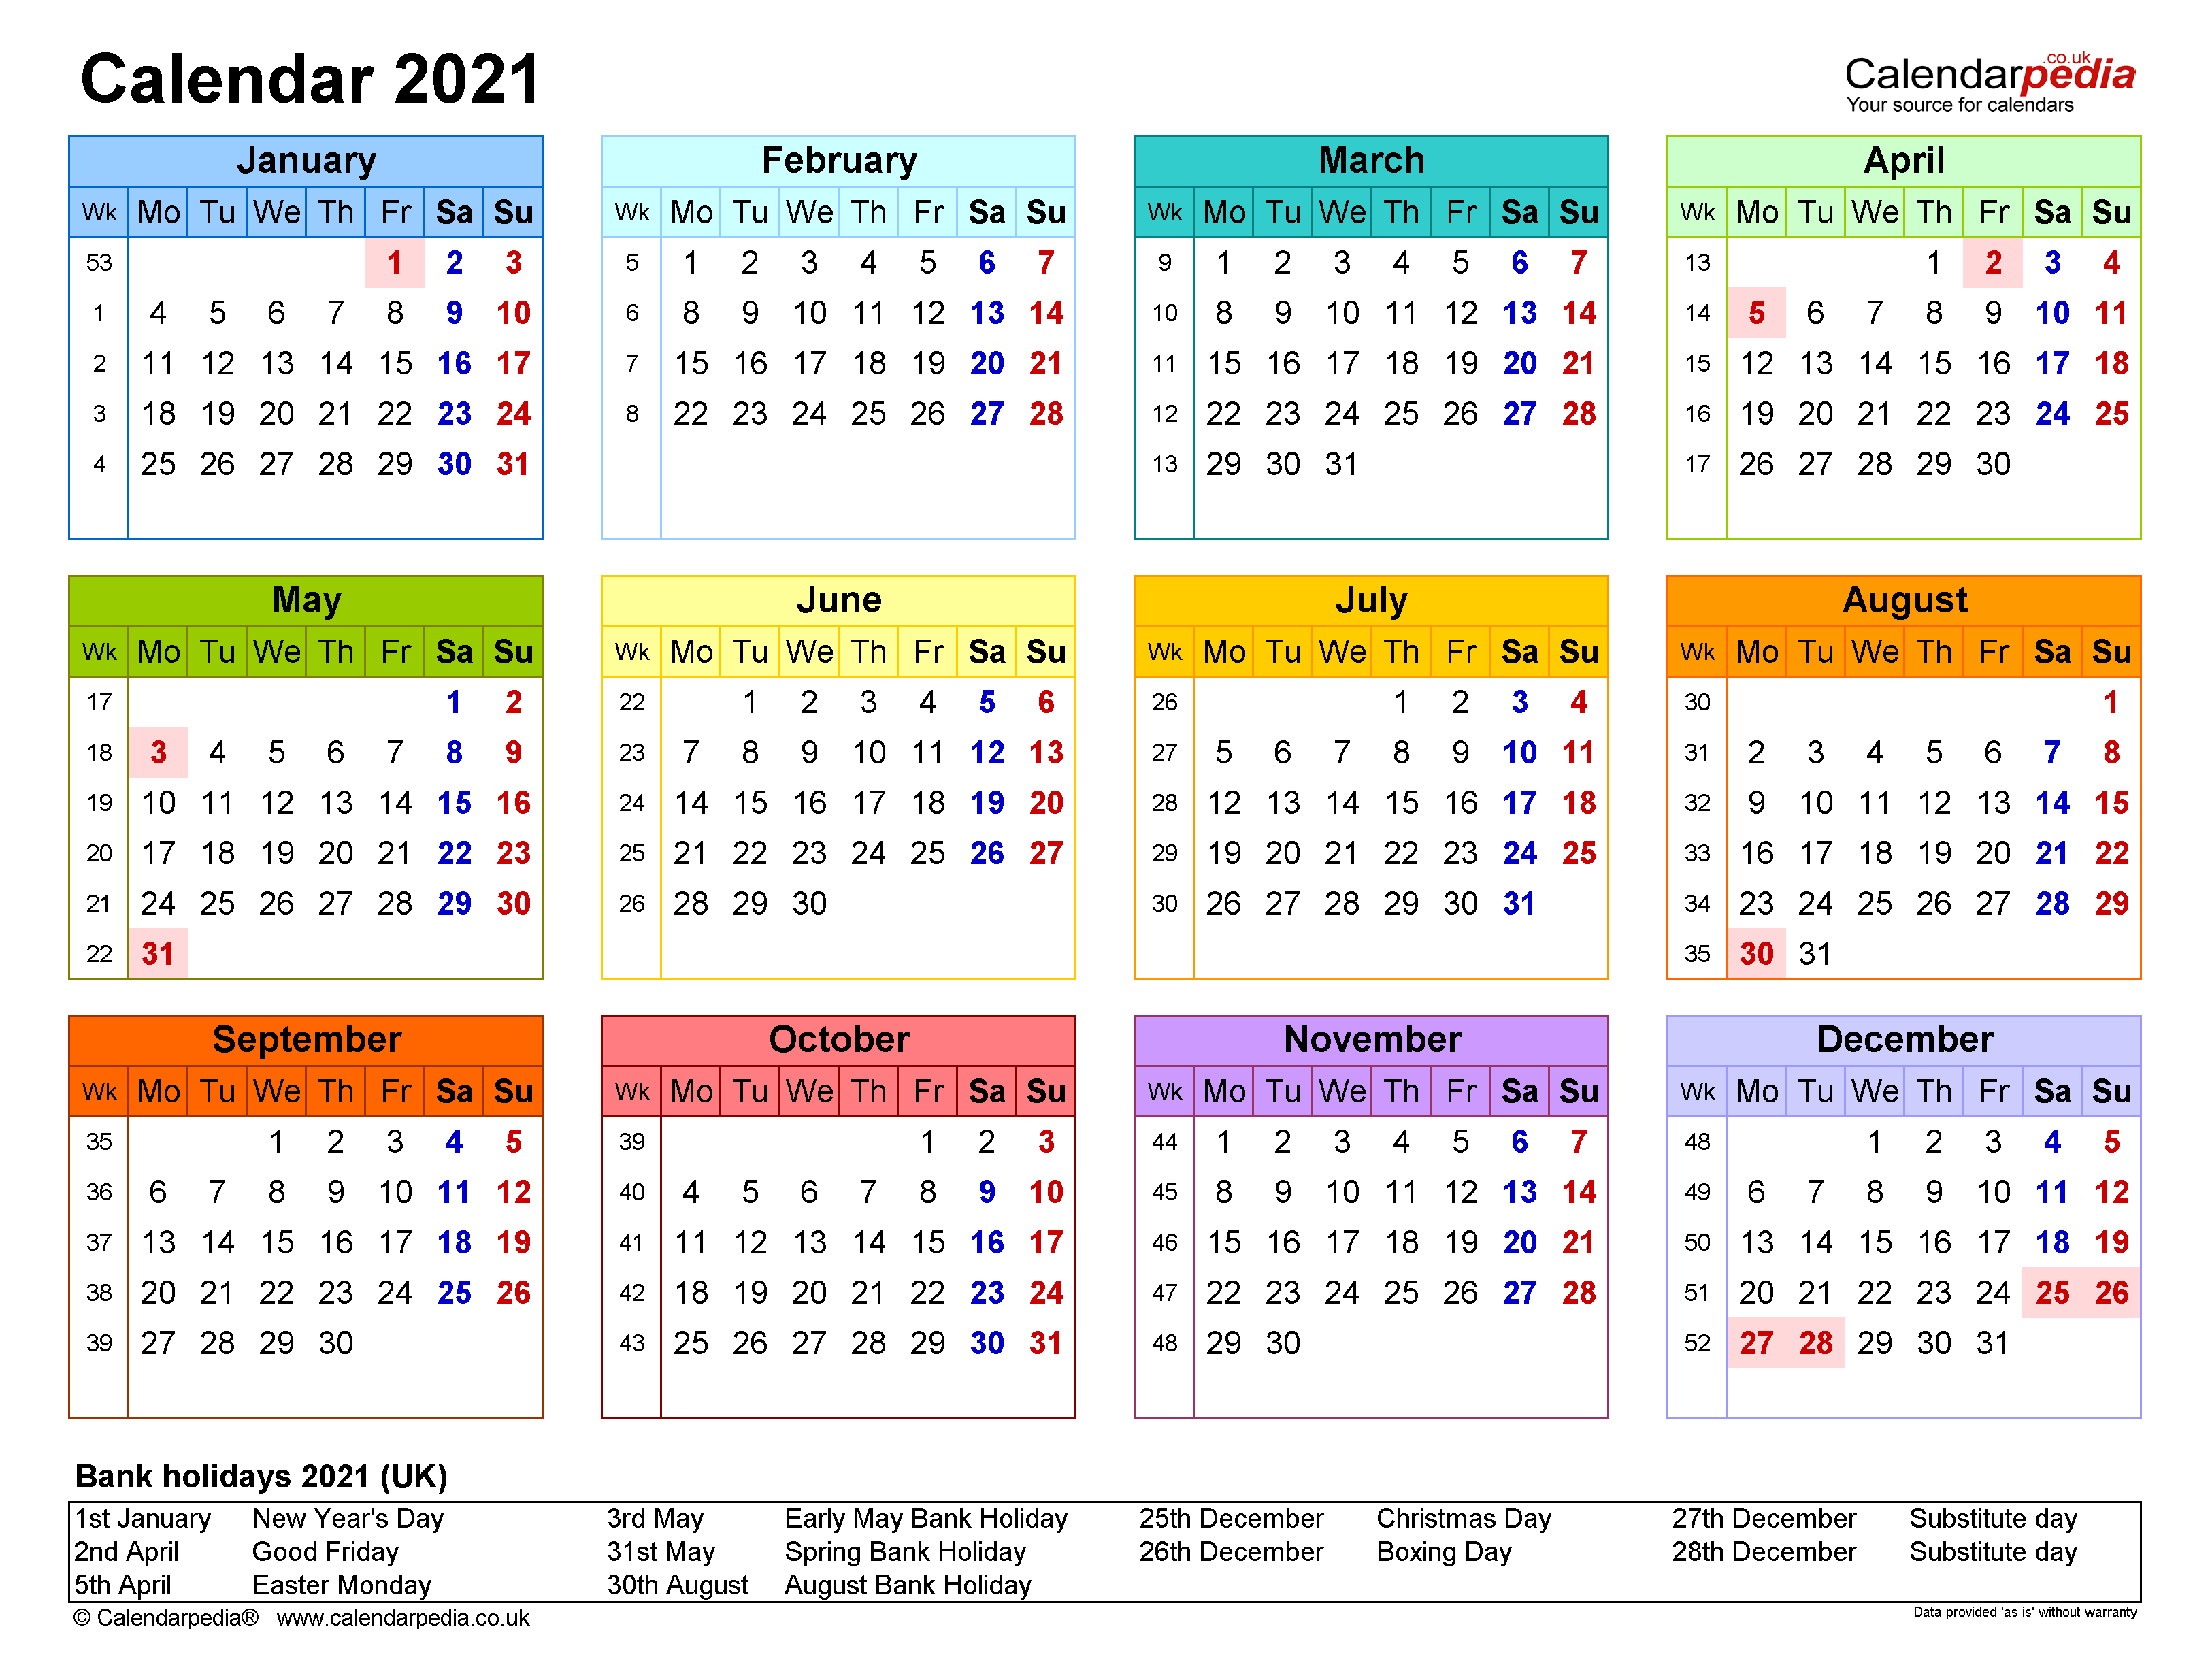 Calendar 2021 (Uk) - Free Printable Pdf Templates